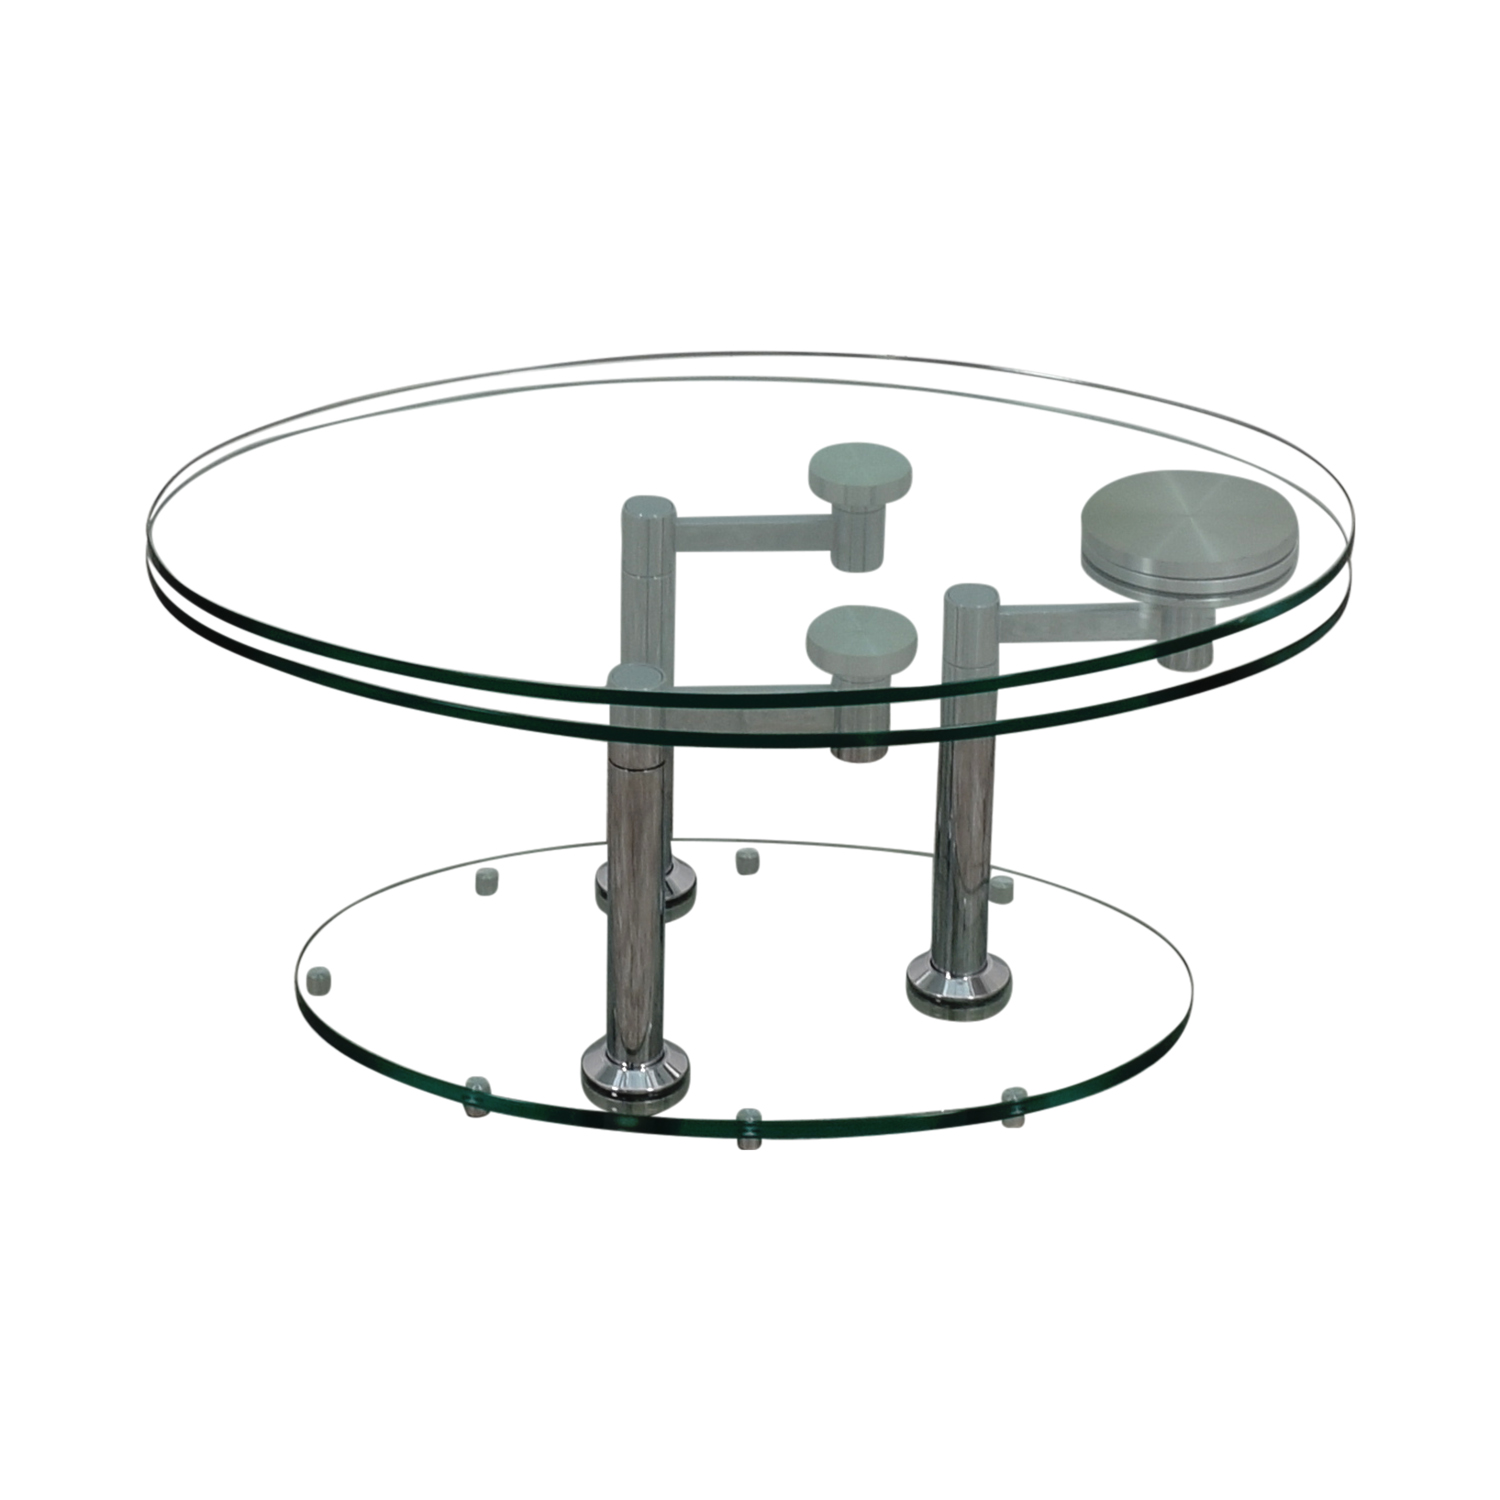 Art Deco Movable Oval Glass & Metal Coffee Table nyc